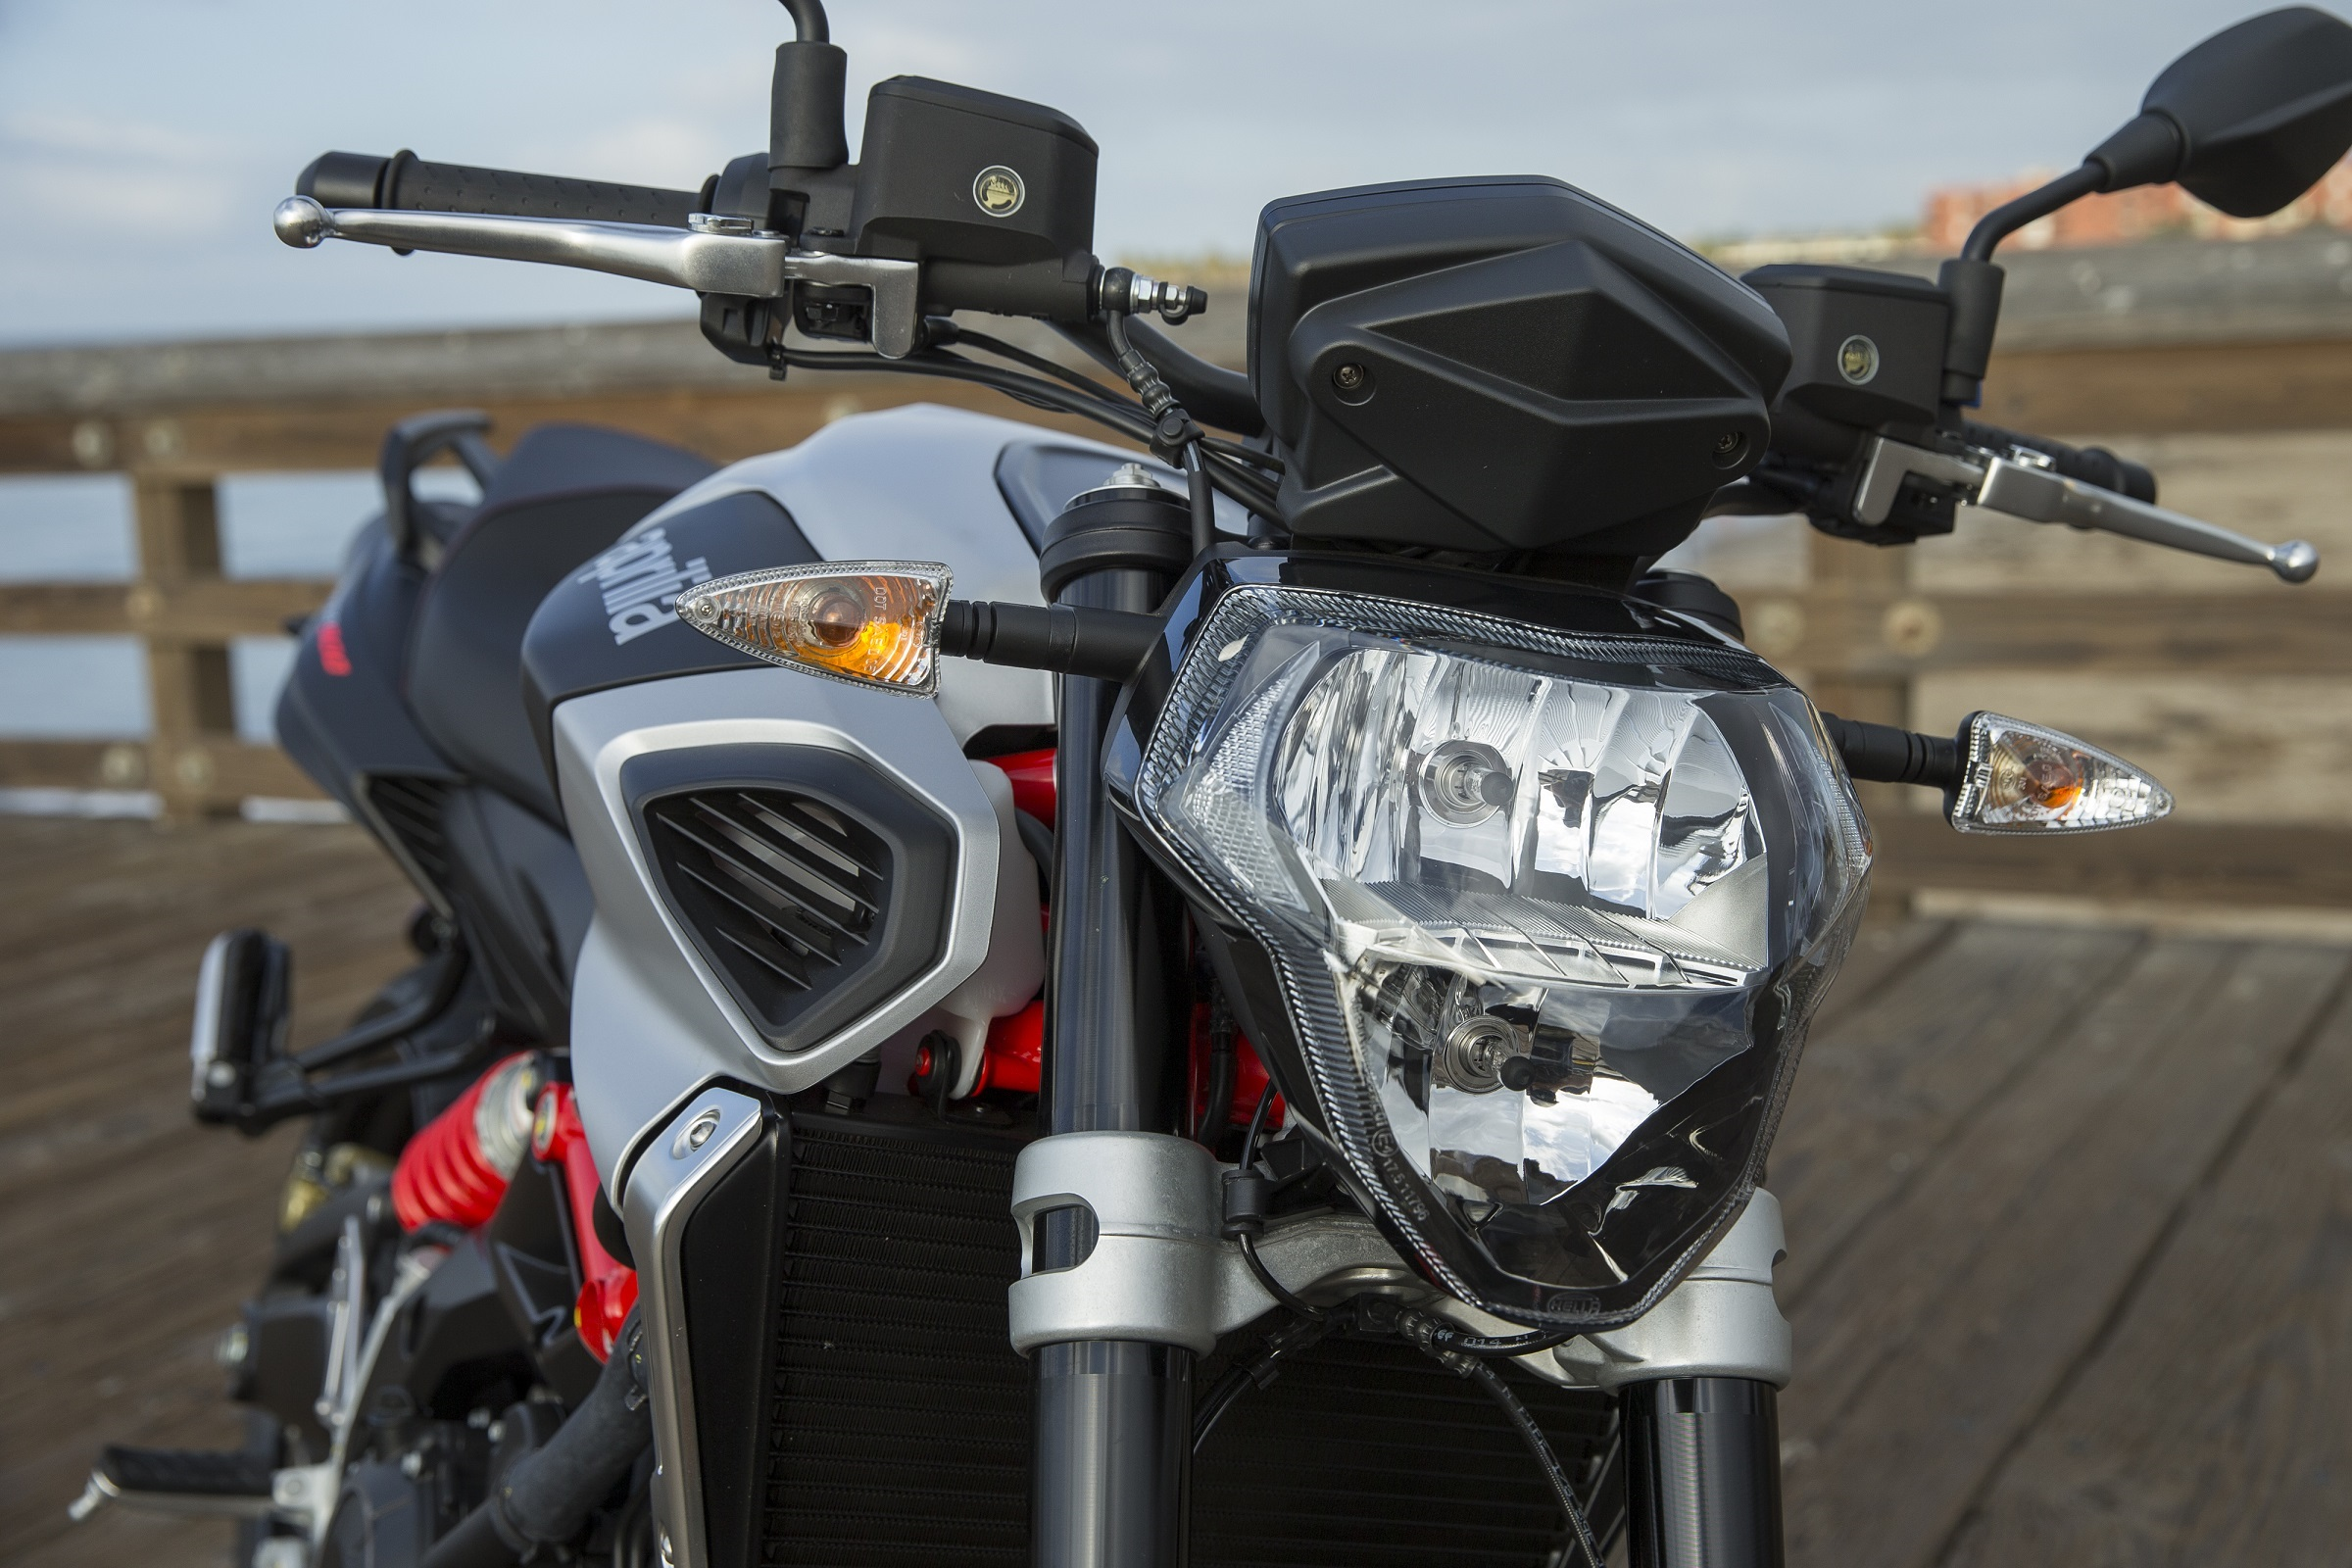 Aprilia Shiver 900 headlight